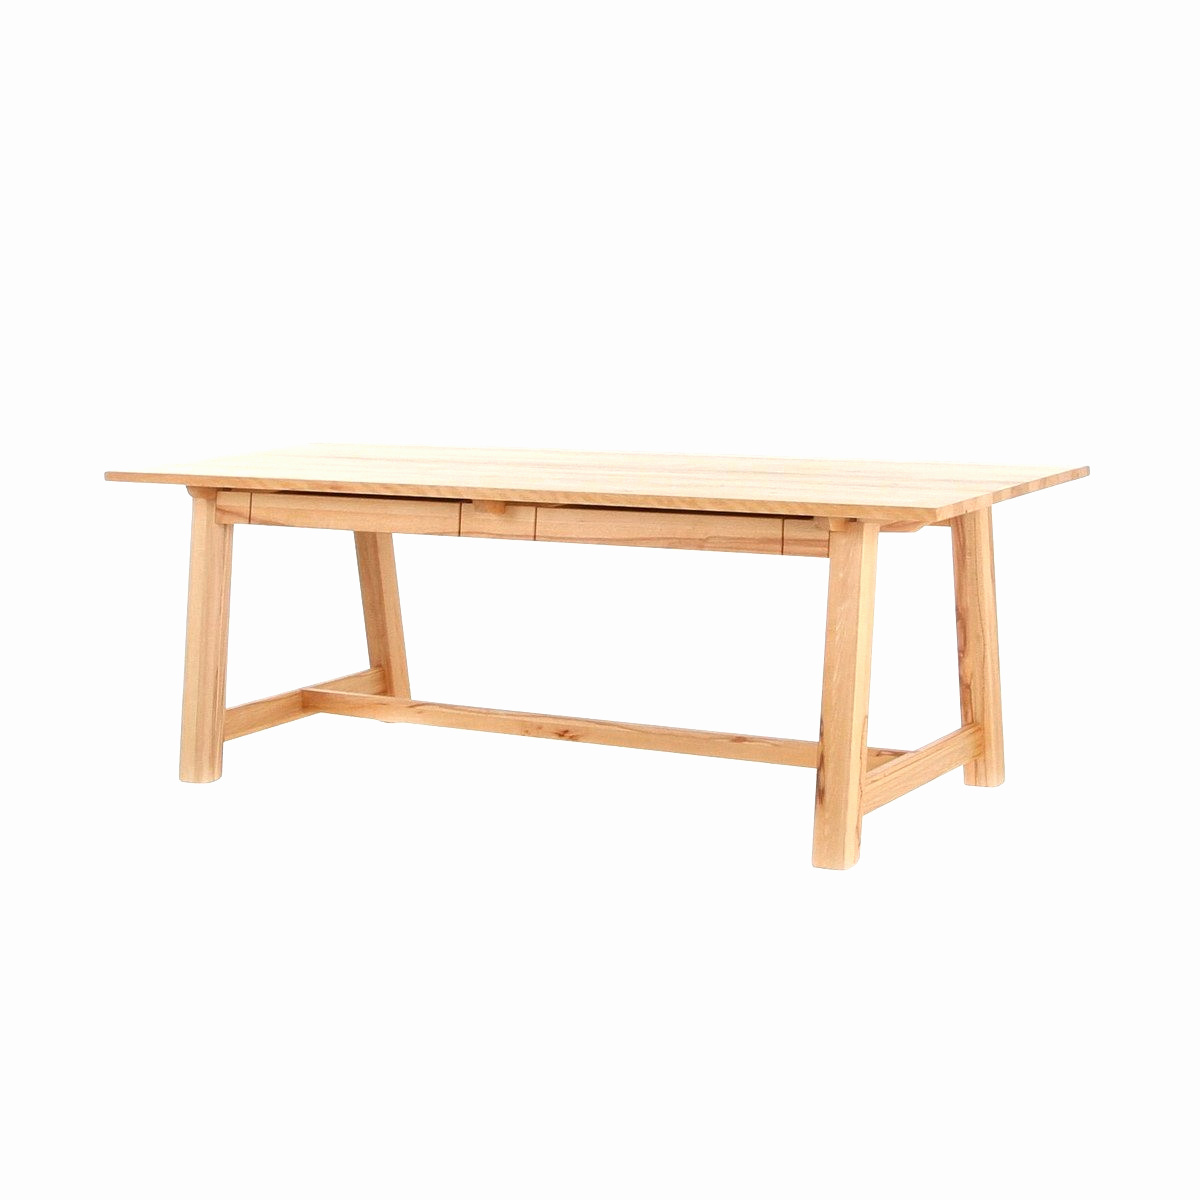 location table pliante source dinspiration luxe elegant location table chaise table haute but alinea chaise 0d of location table pliante